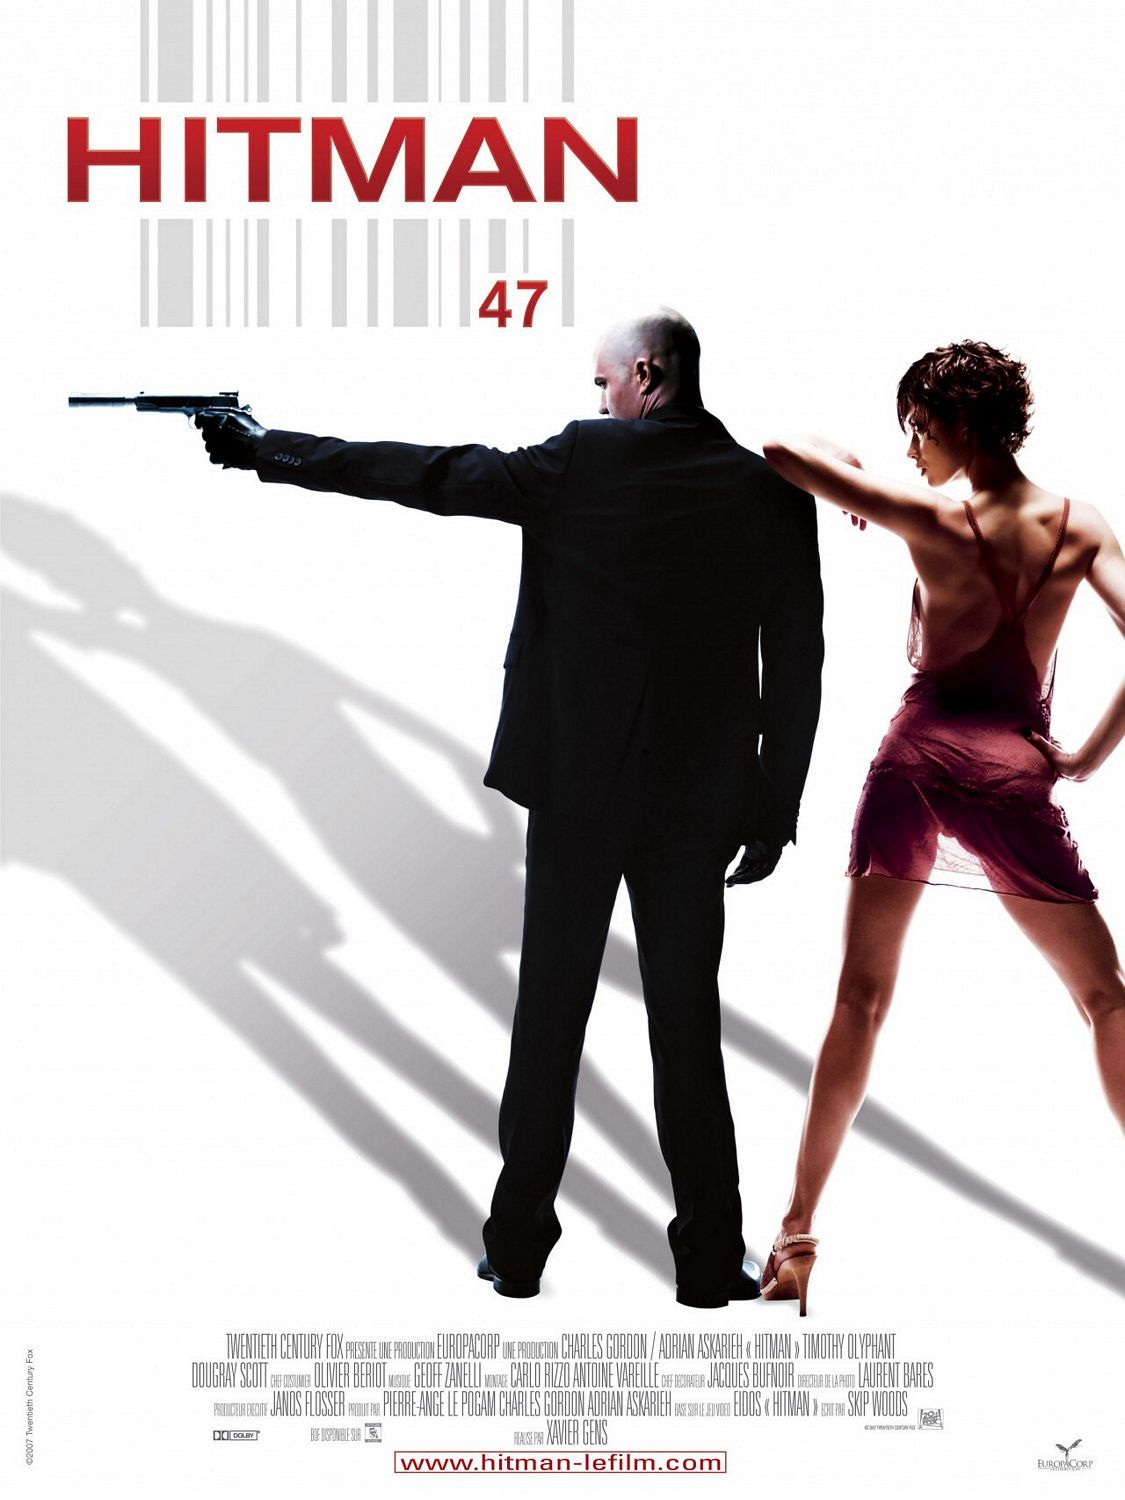 Hitman Hitman Movie Hitman Agent 47 Hitman